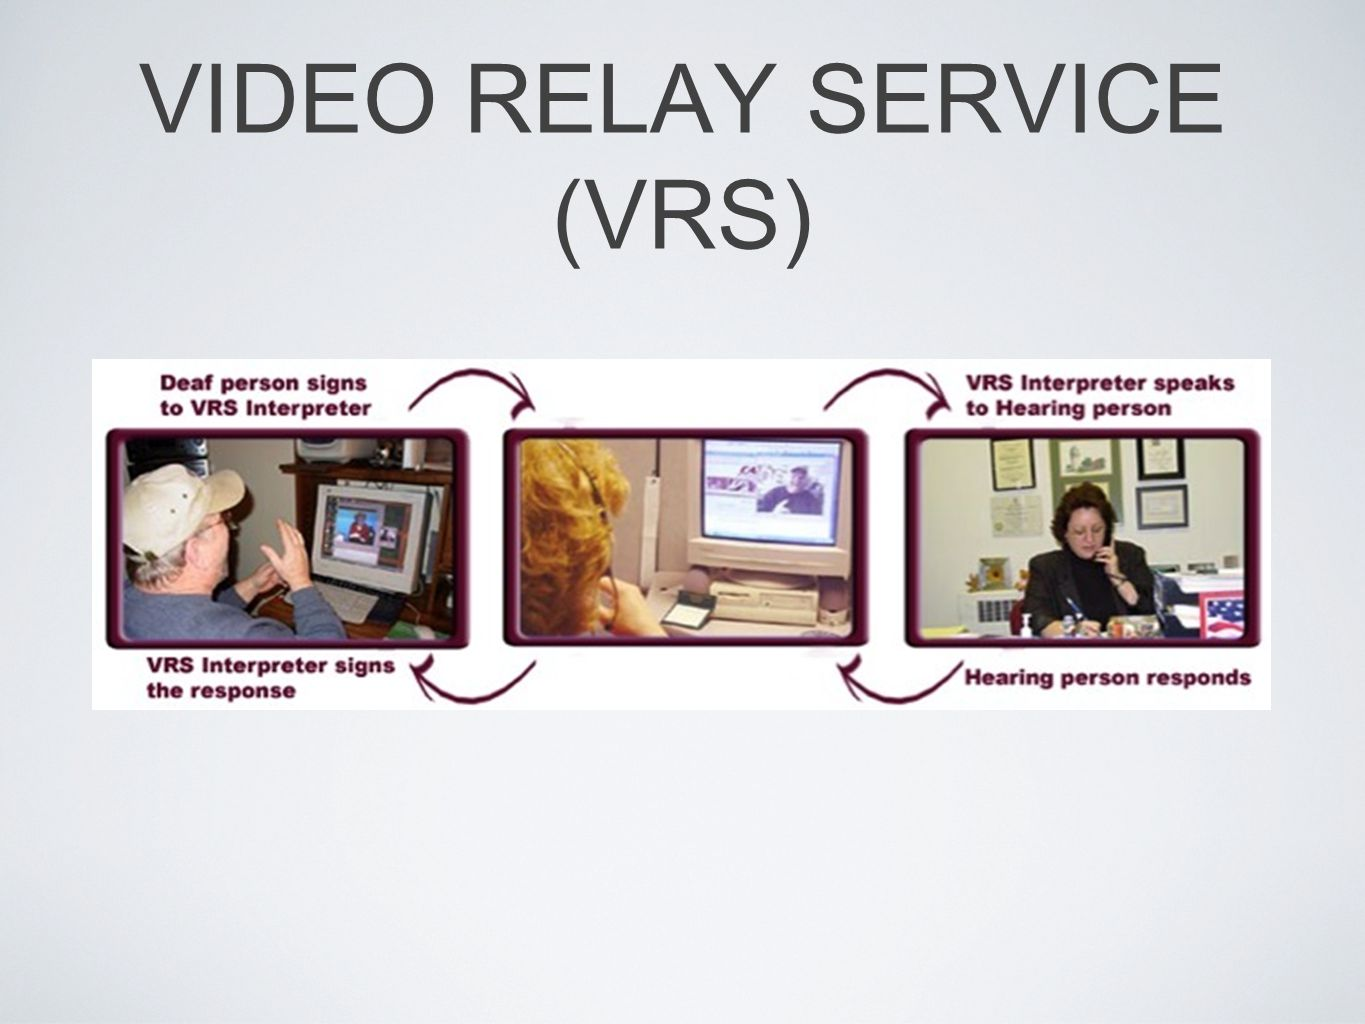 VIDEO RELAY SERVICE (VRS)